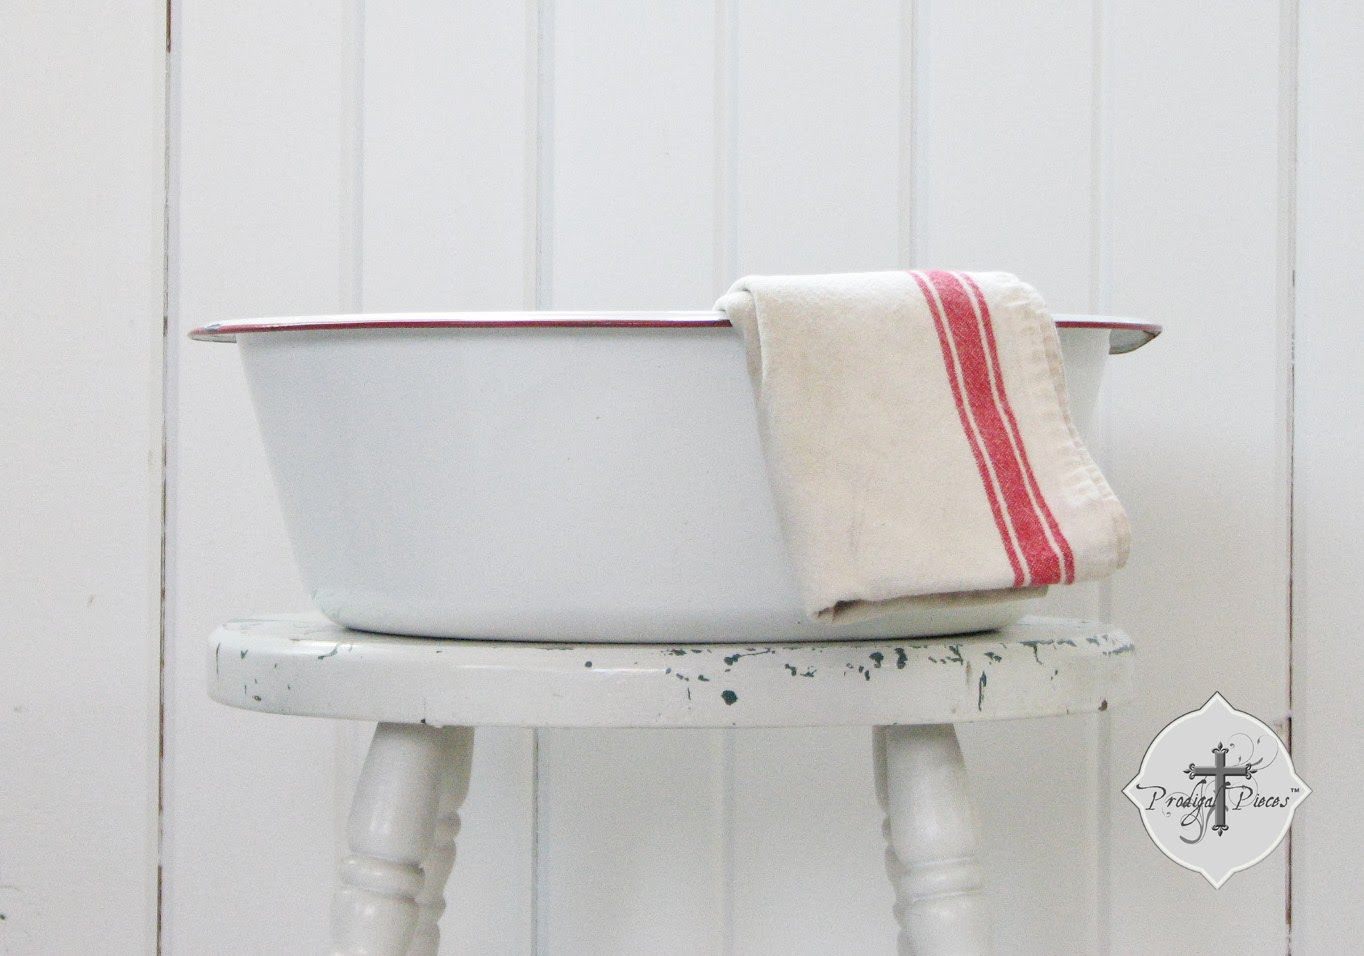 Antique Vintage Large Farmhouse Wash Basin Bowl White with Red Trim via Prodigal Pieces